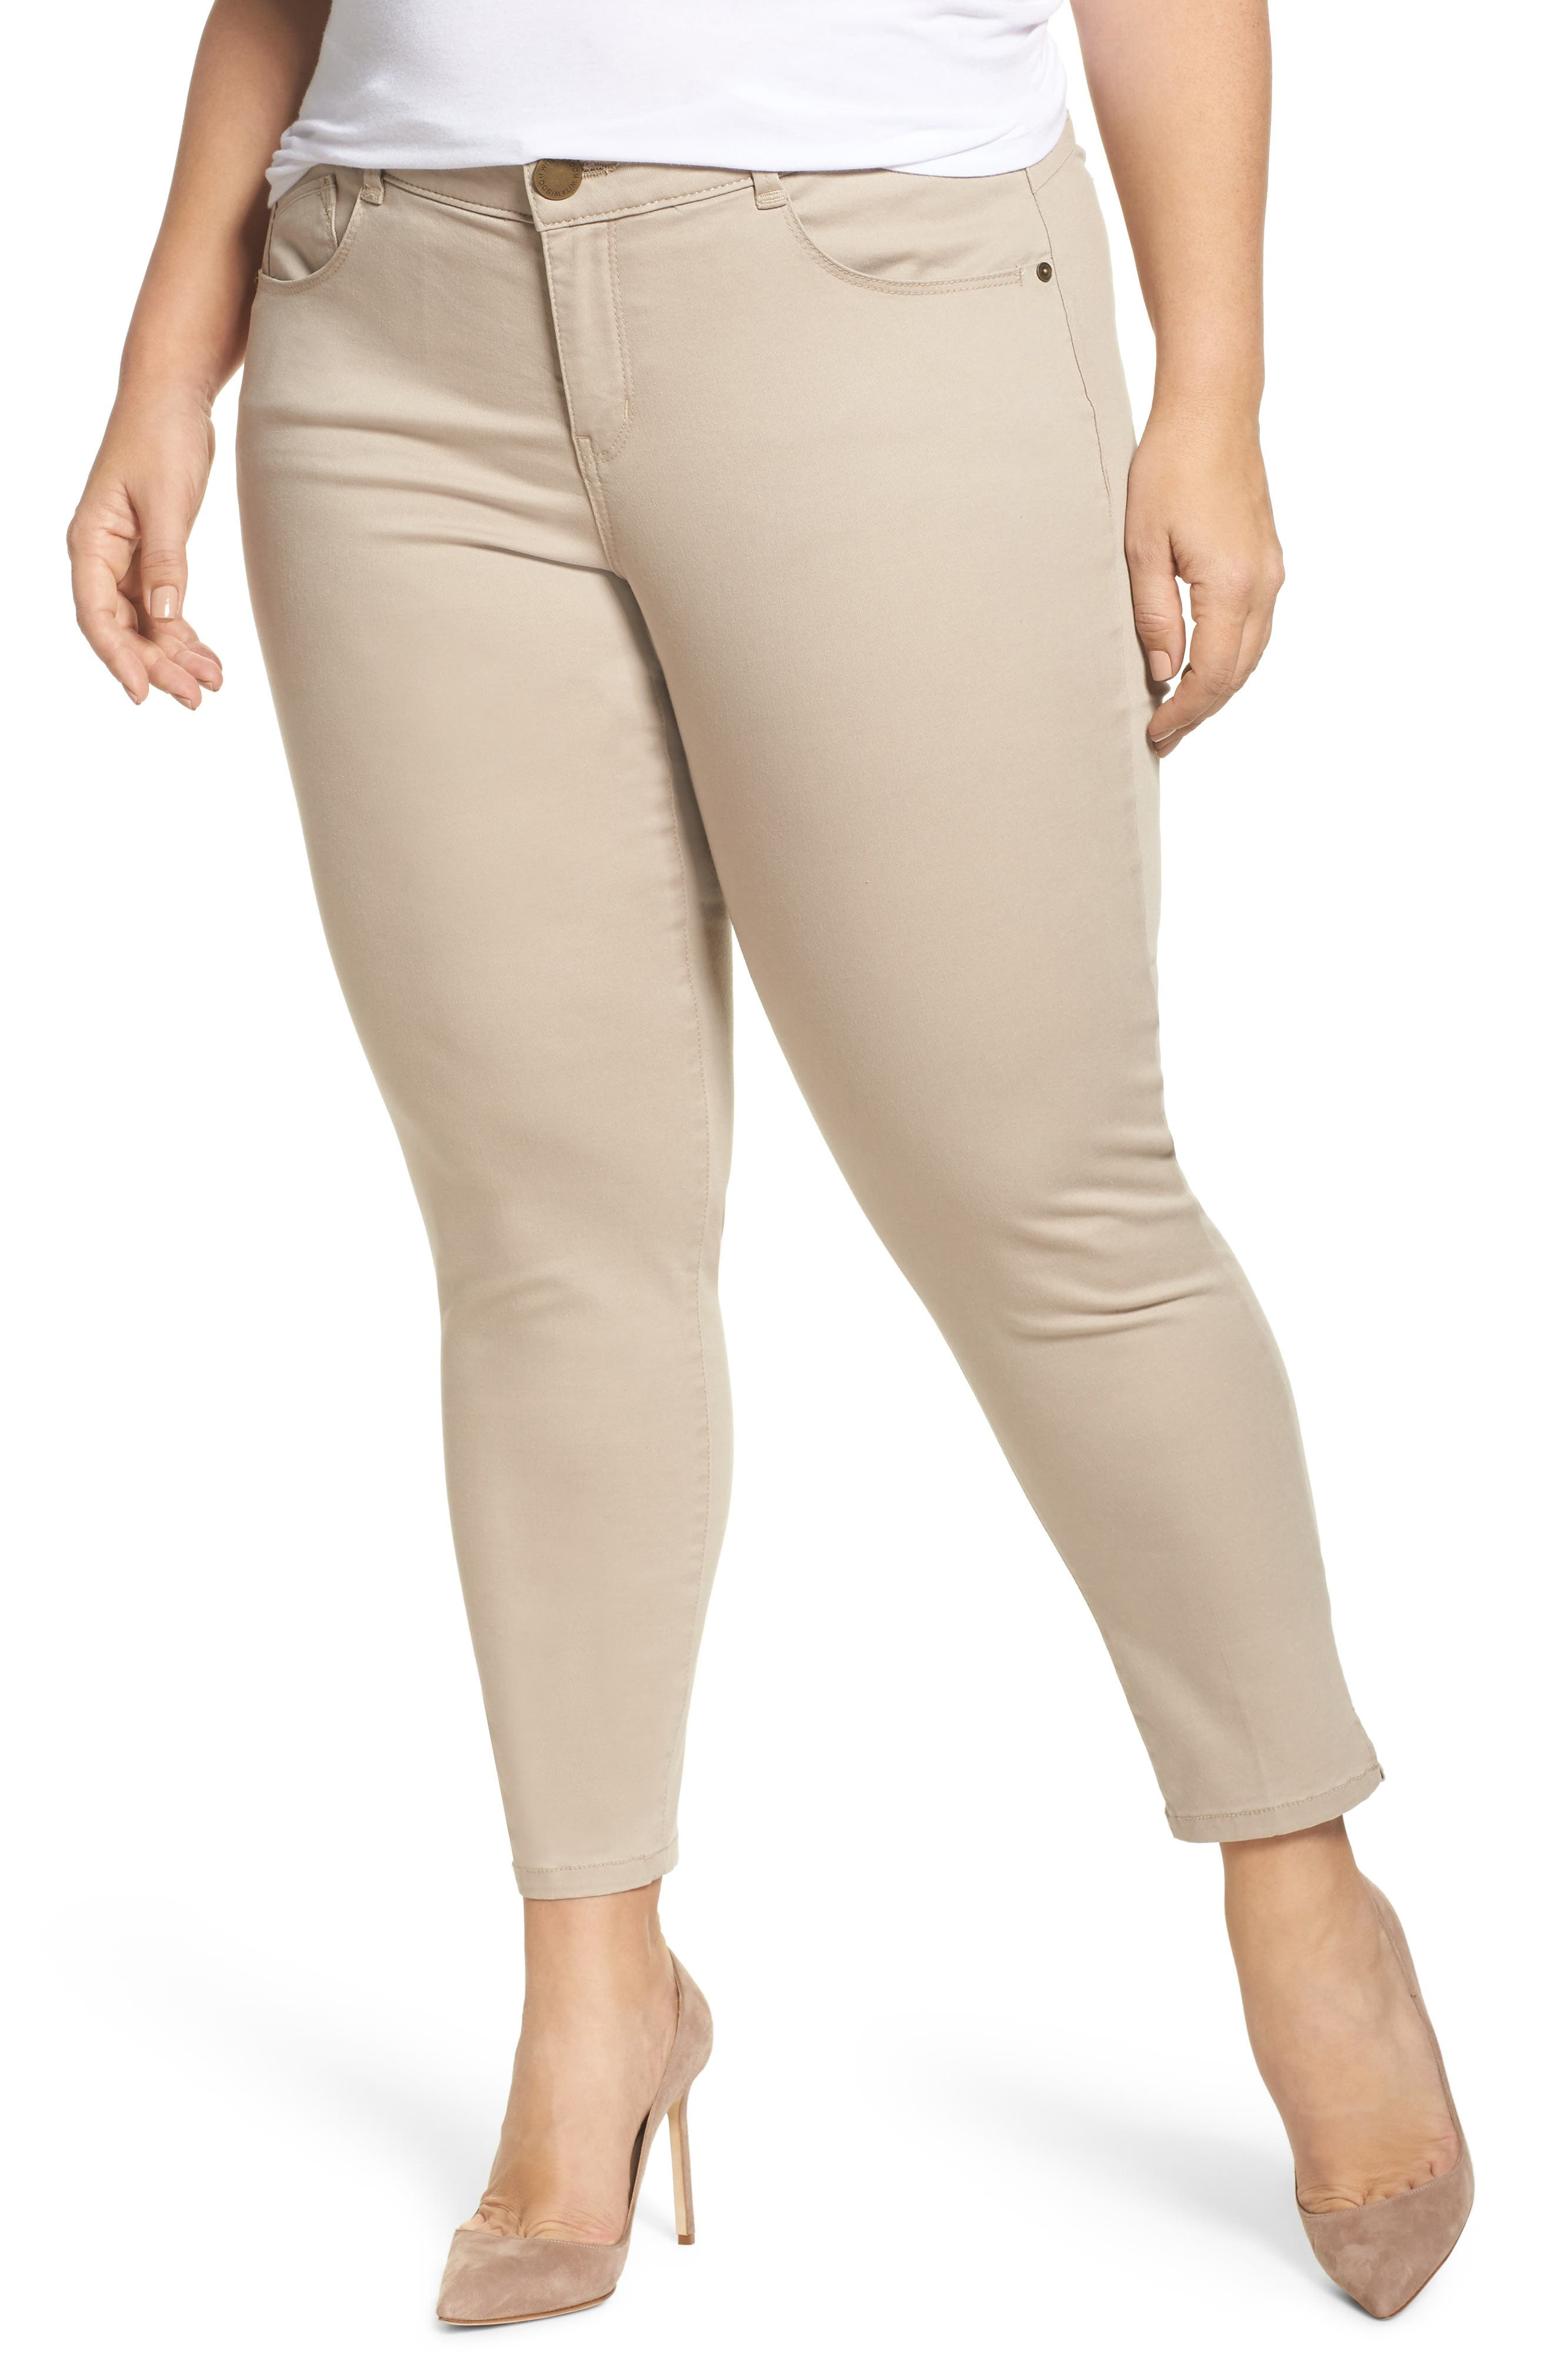 Ab-solution Ankle Pants,                             Main thumbnail 1, color,                             Flax